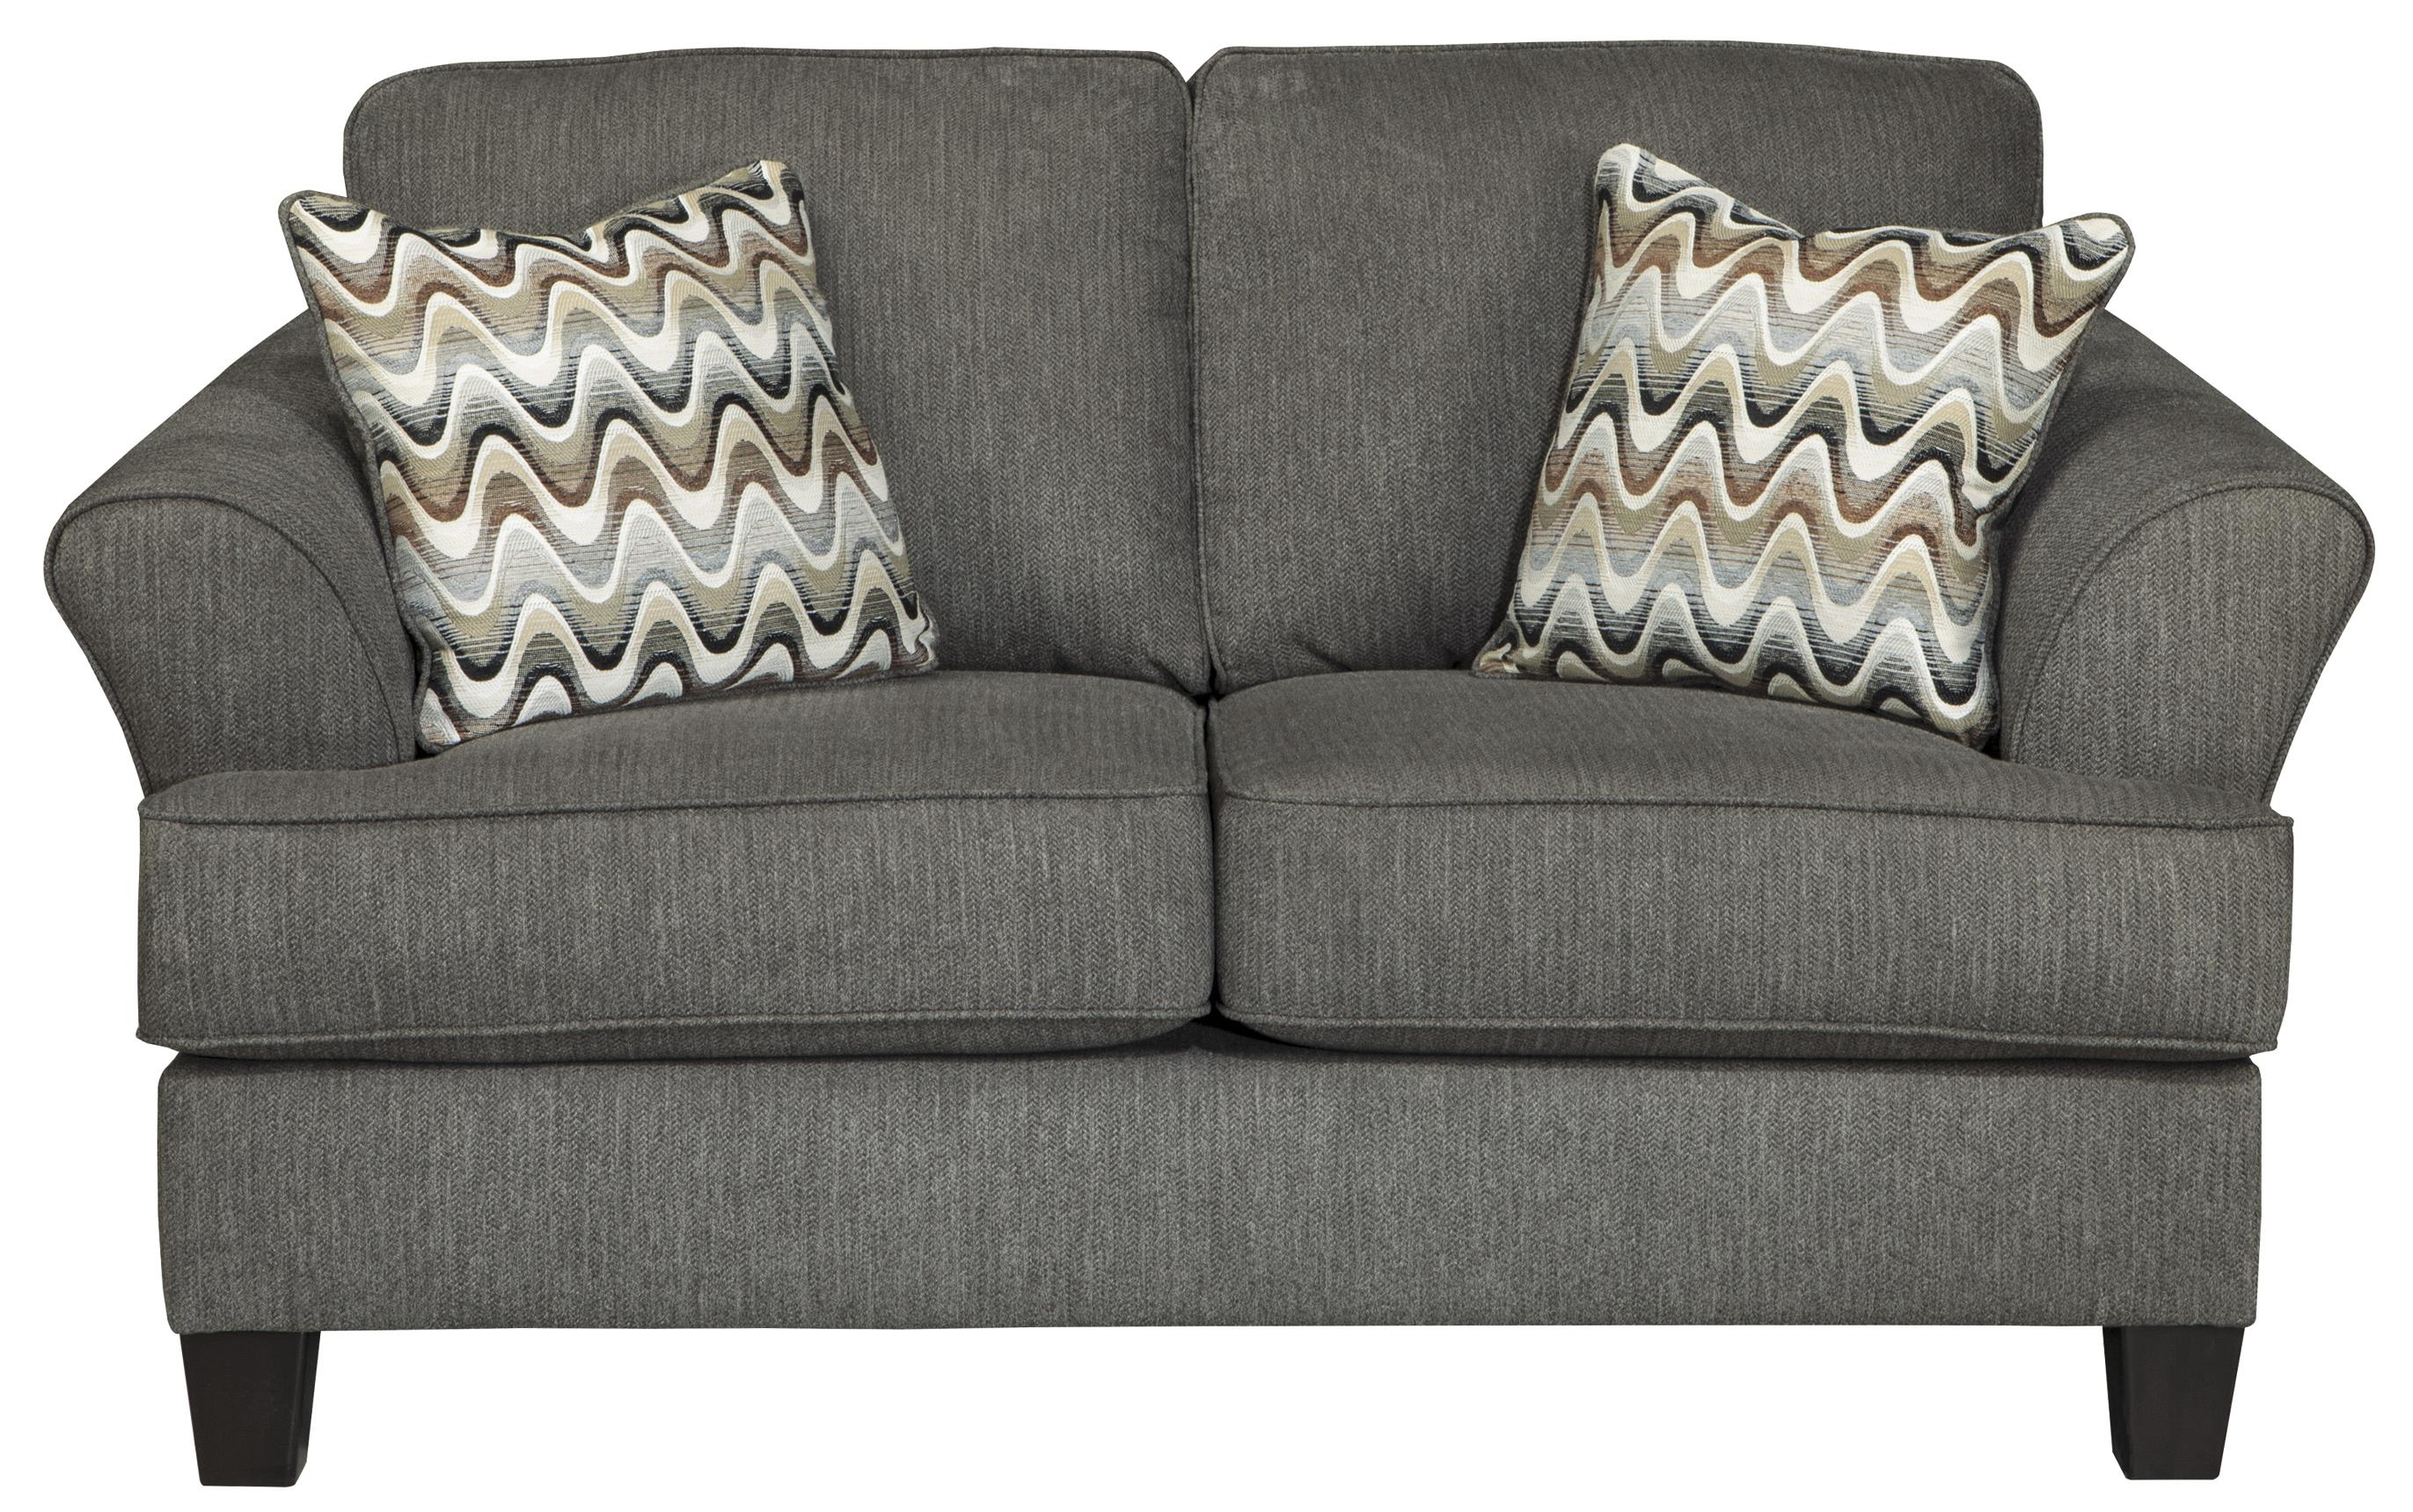 sleeper zigana by category page love id product seat grey name twist sunset istikbal chain loveseat index